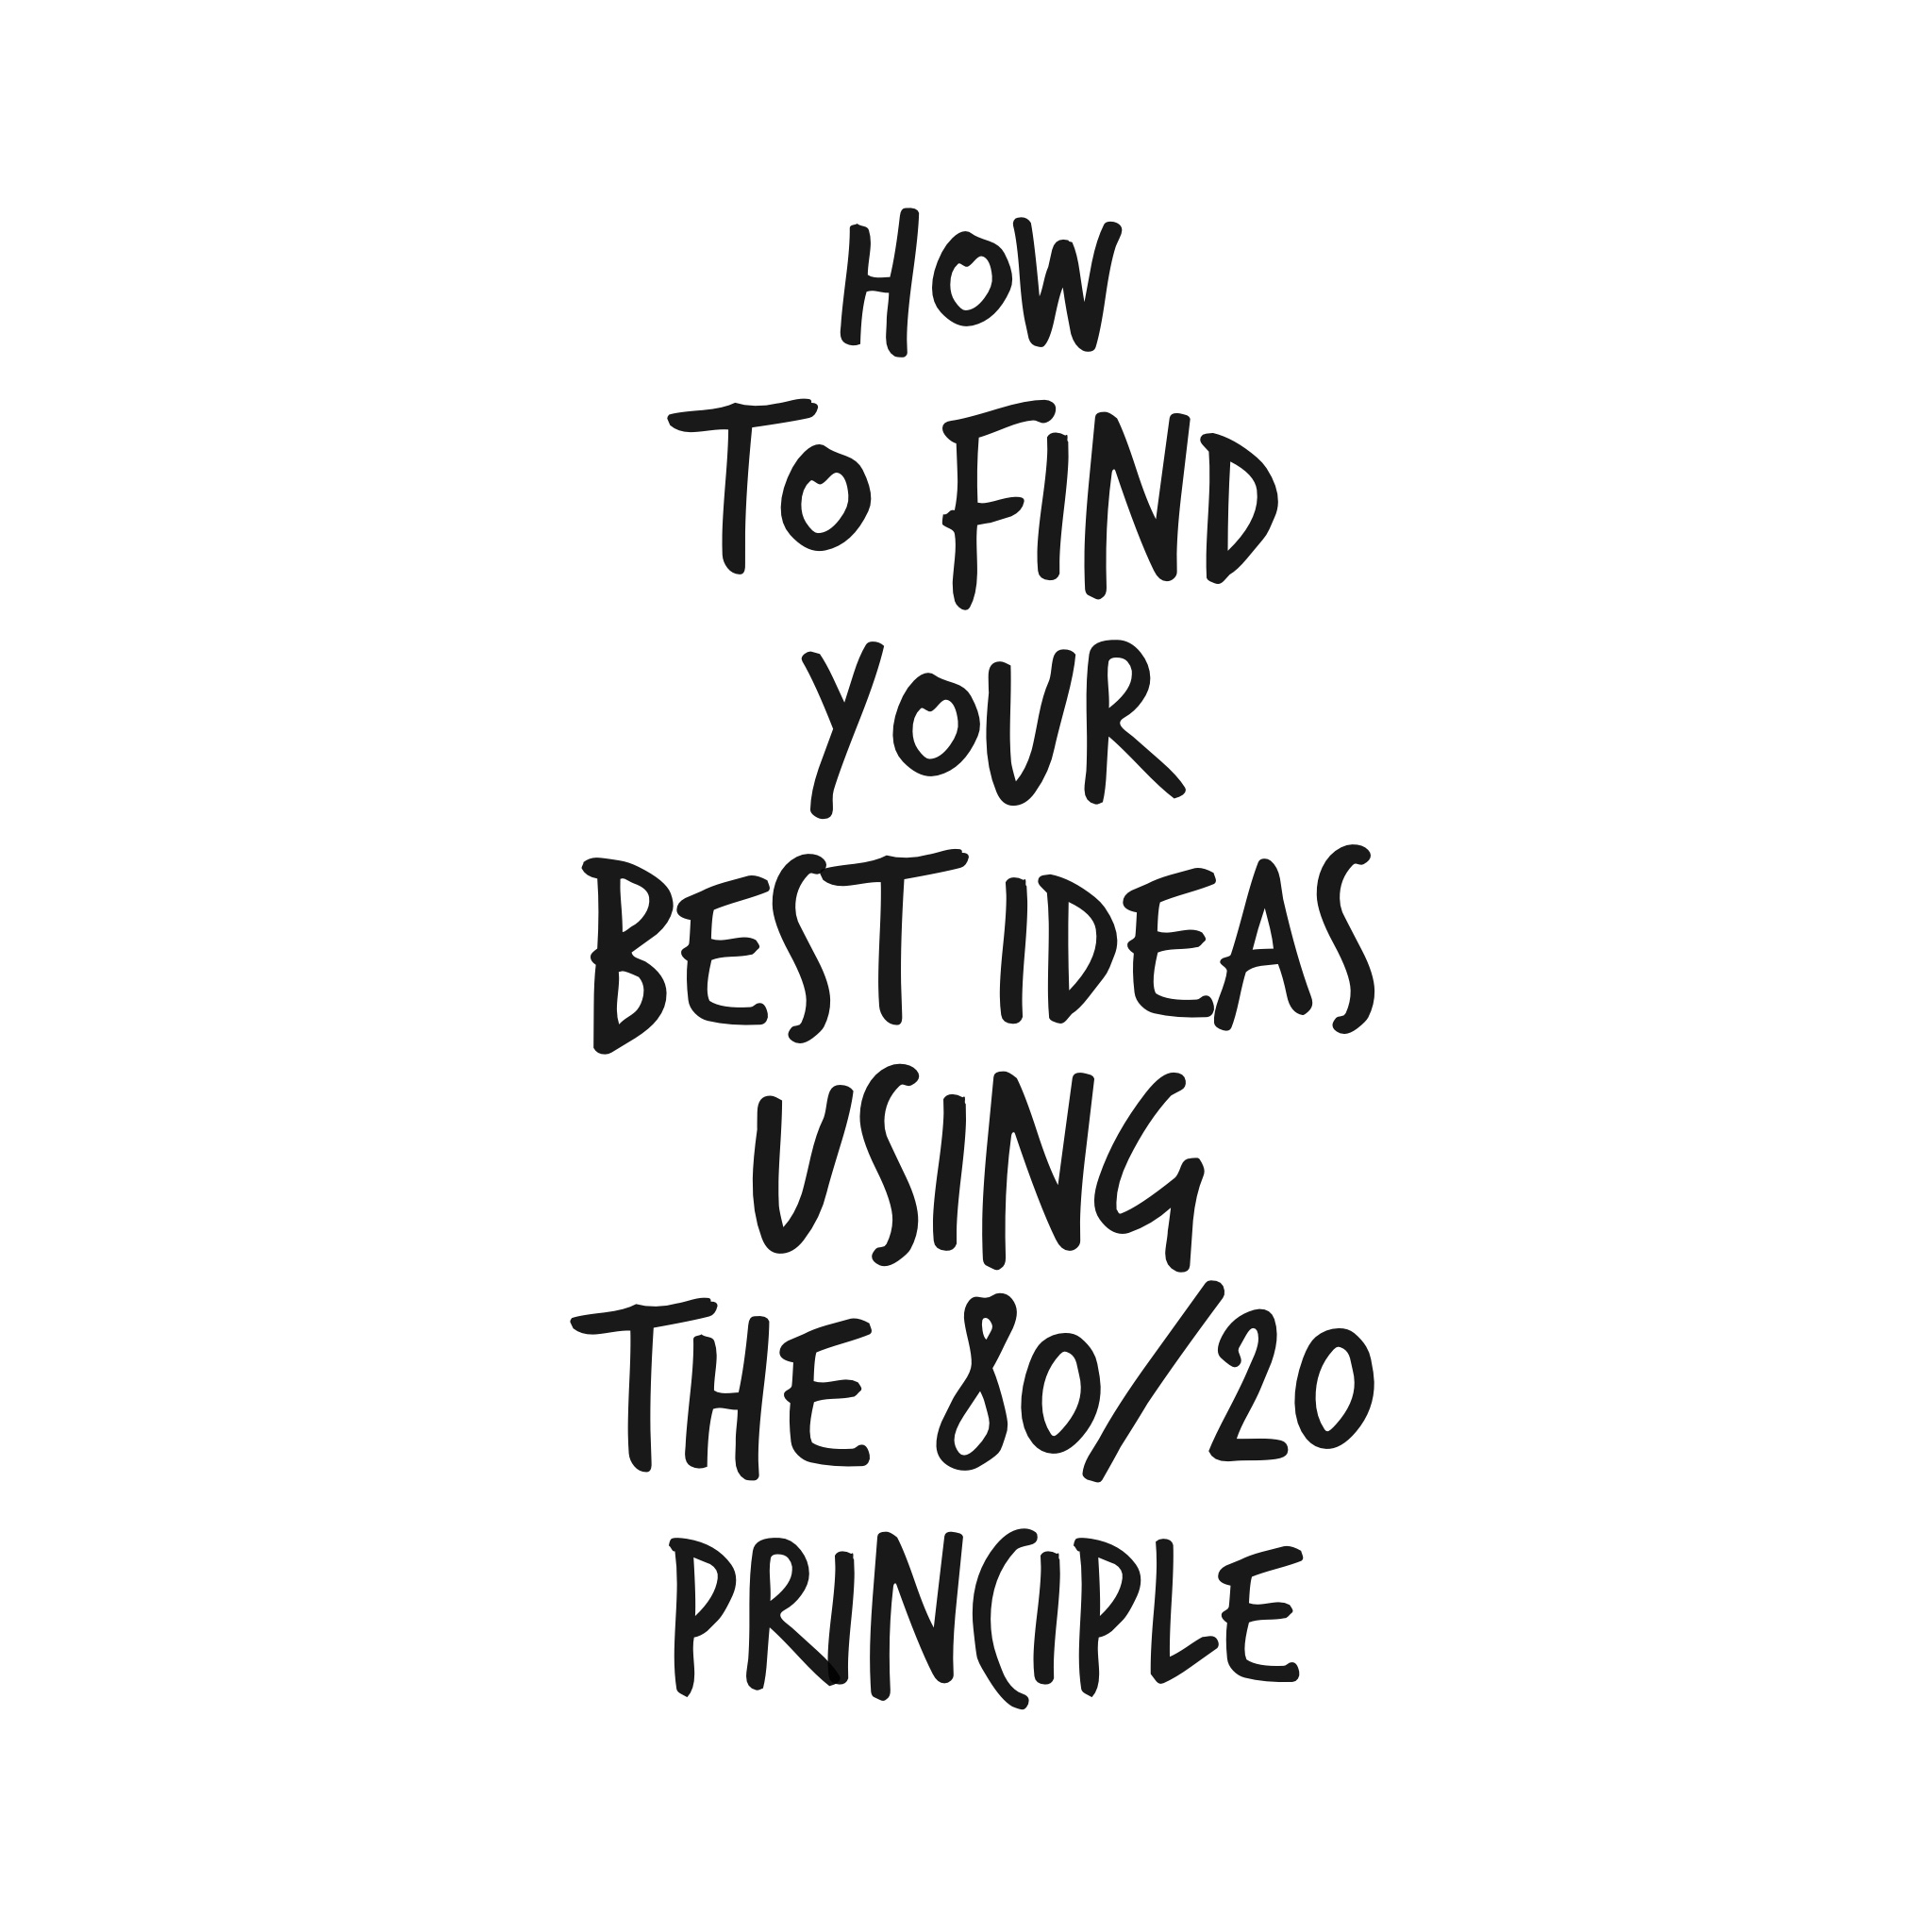 Idea Juicing: How To Find Your Best Ideas Using The 80/20